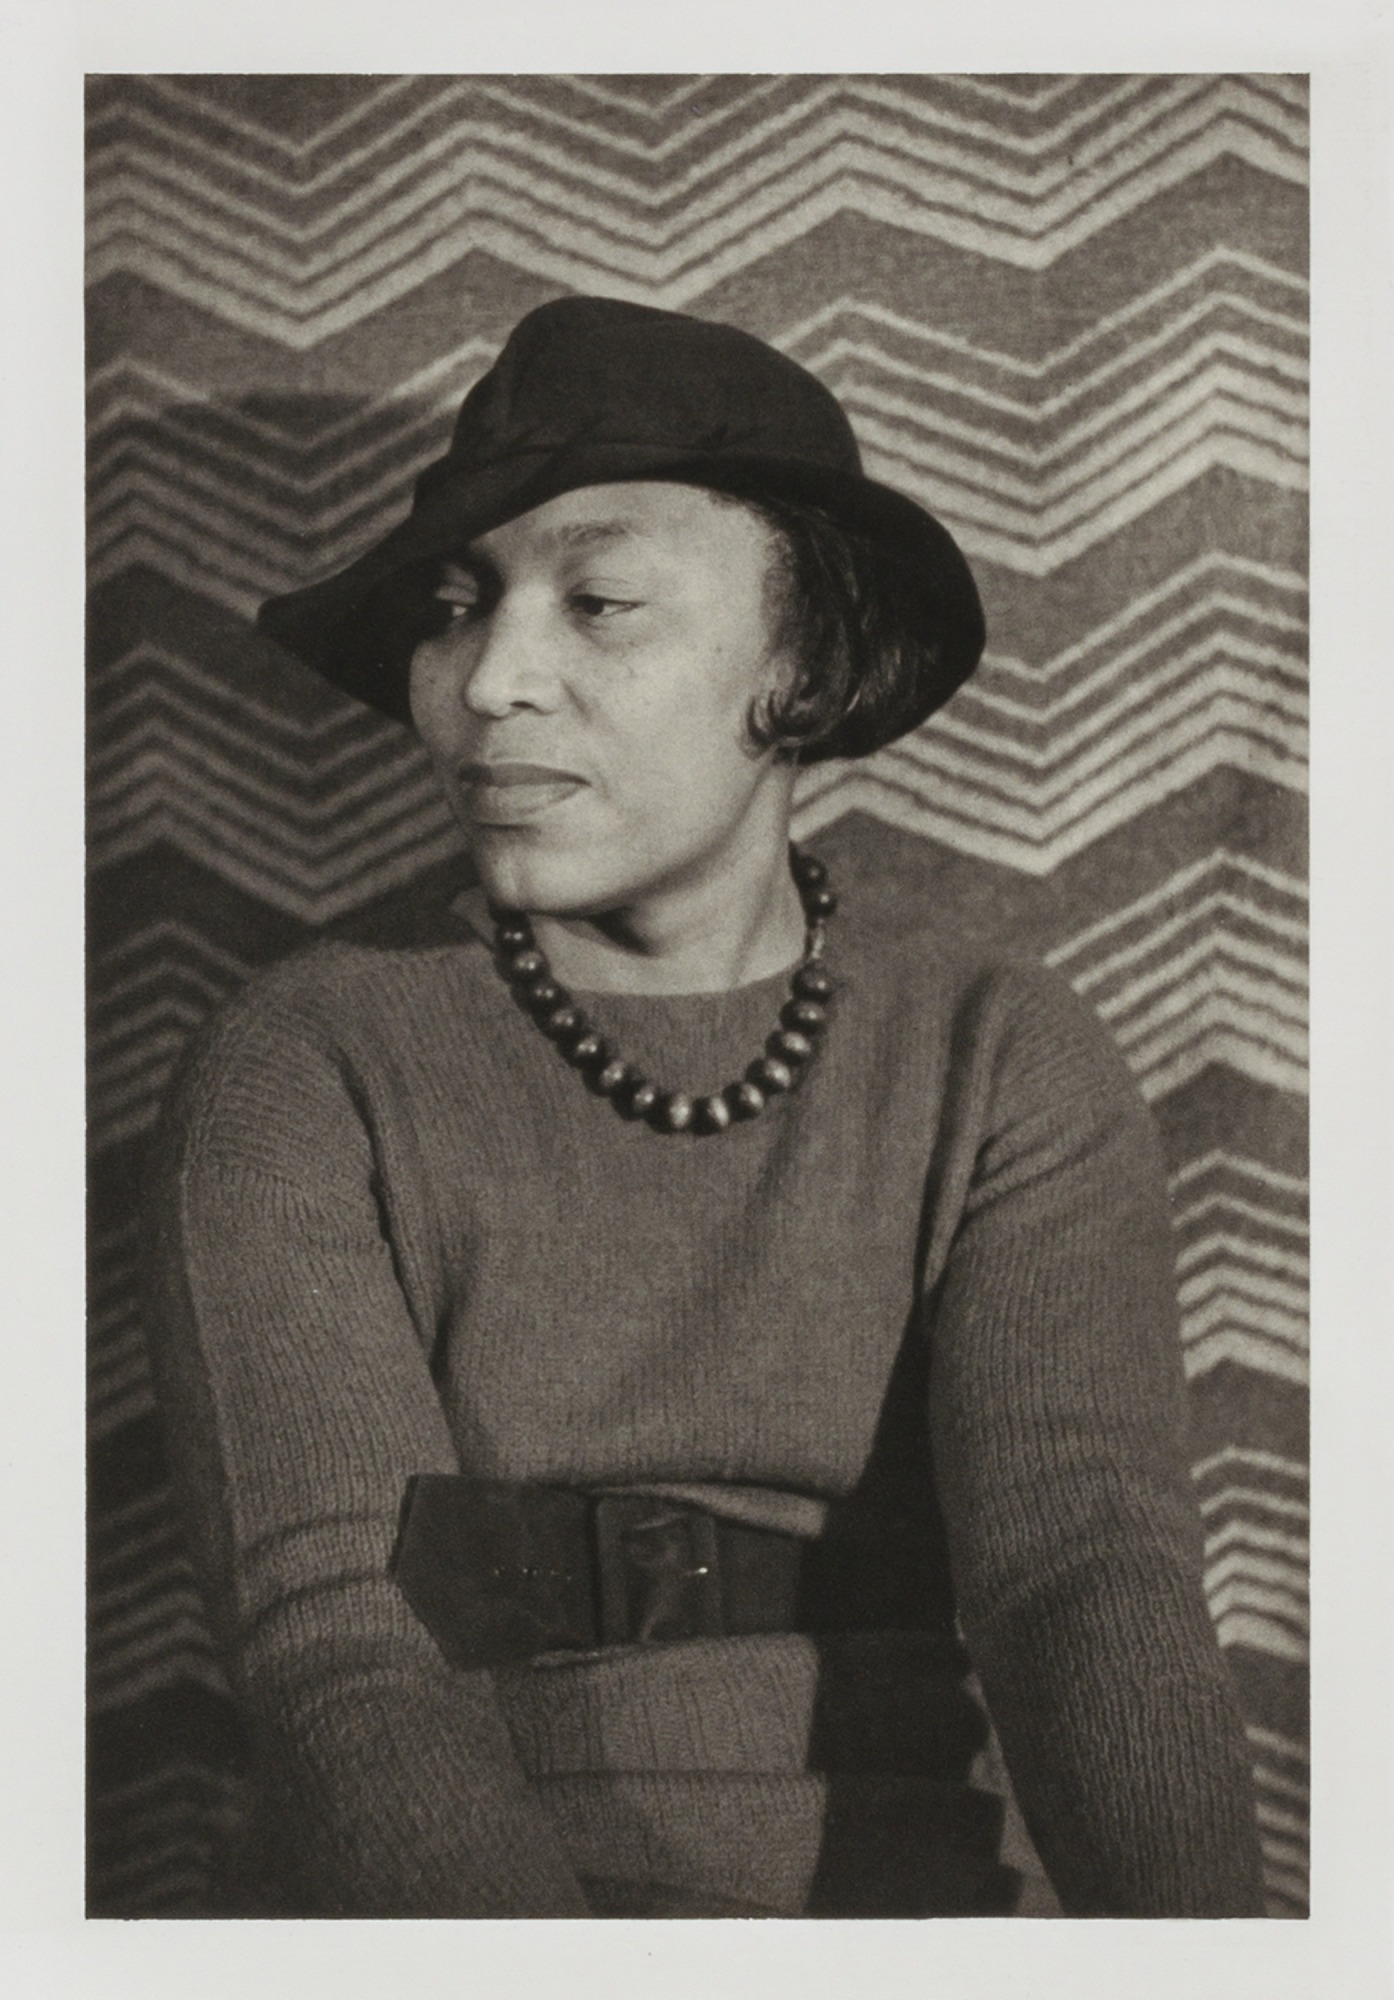 """images for Zora Neale Hurston, from the unrealized portfolio """"Noble Black Women: The Harlem Renaissance and After"""""""